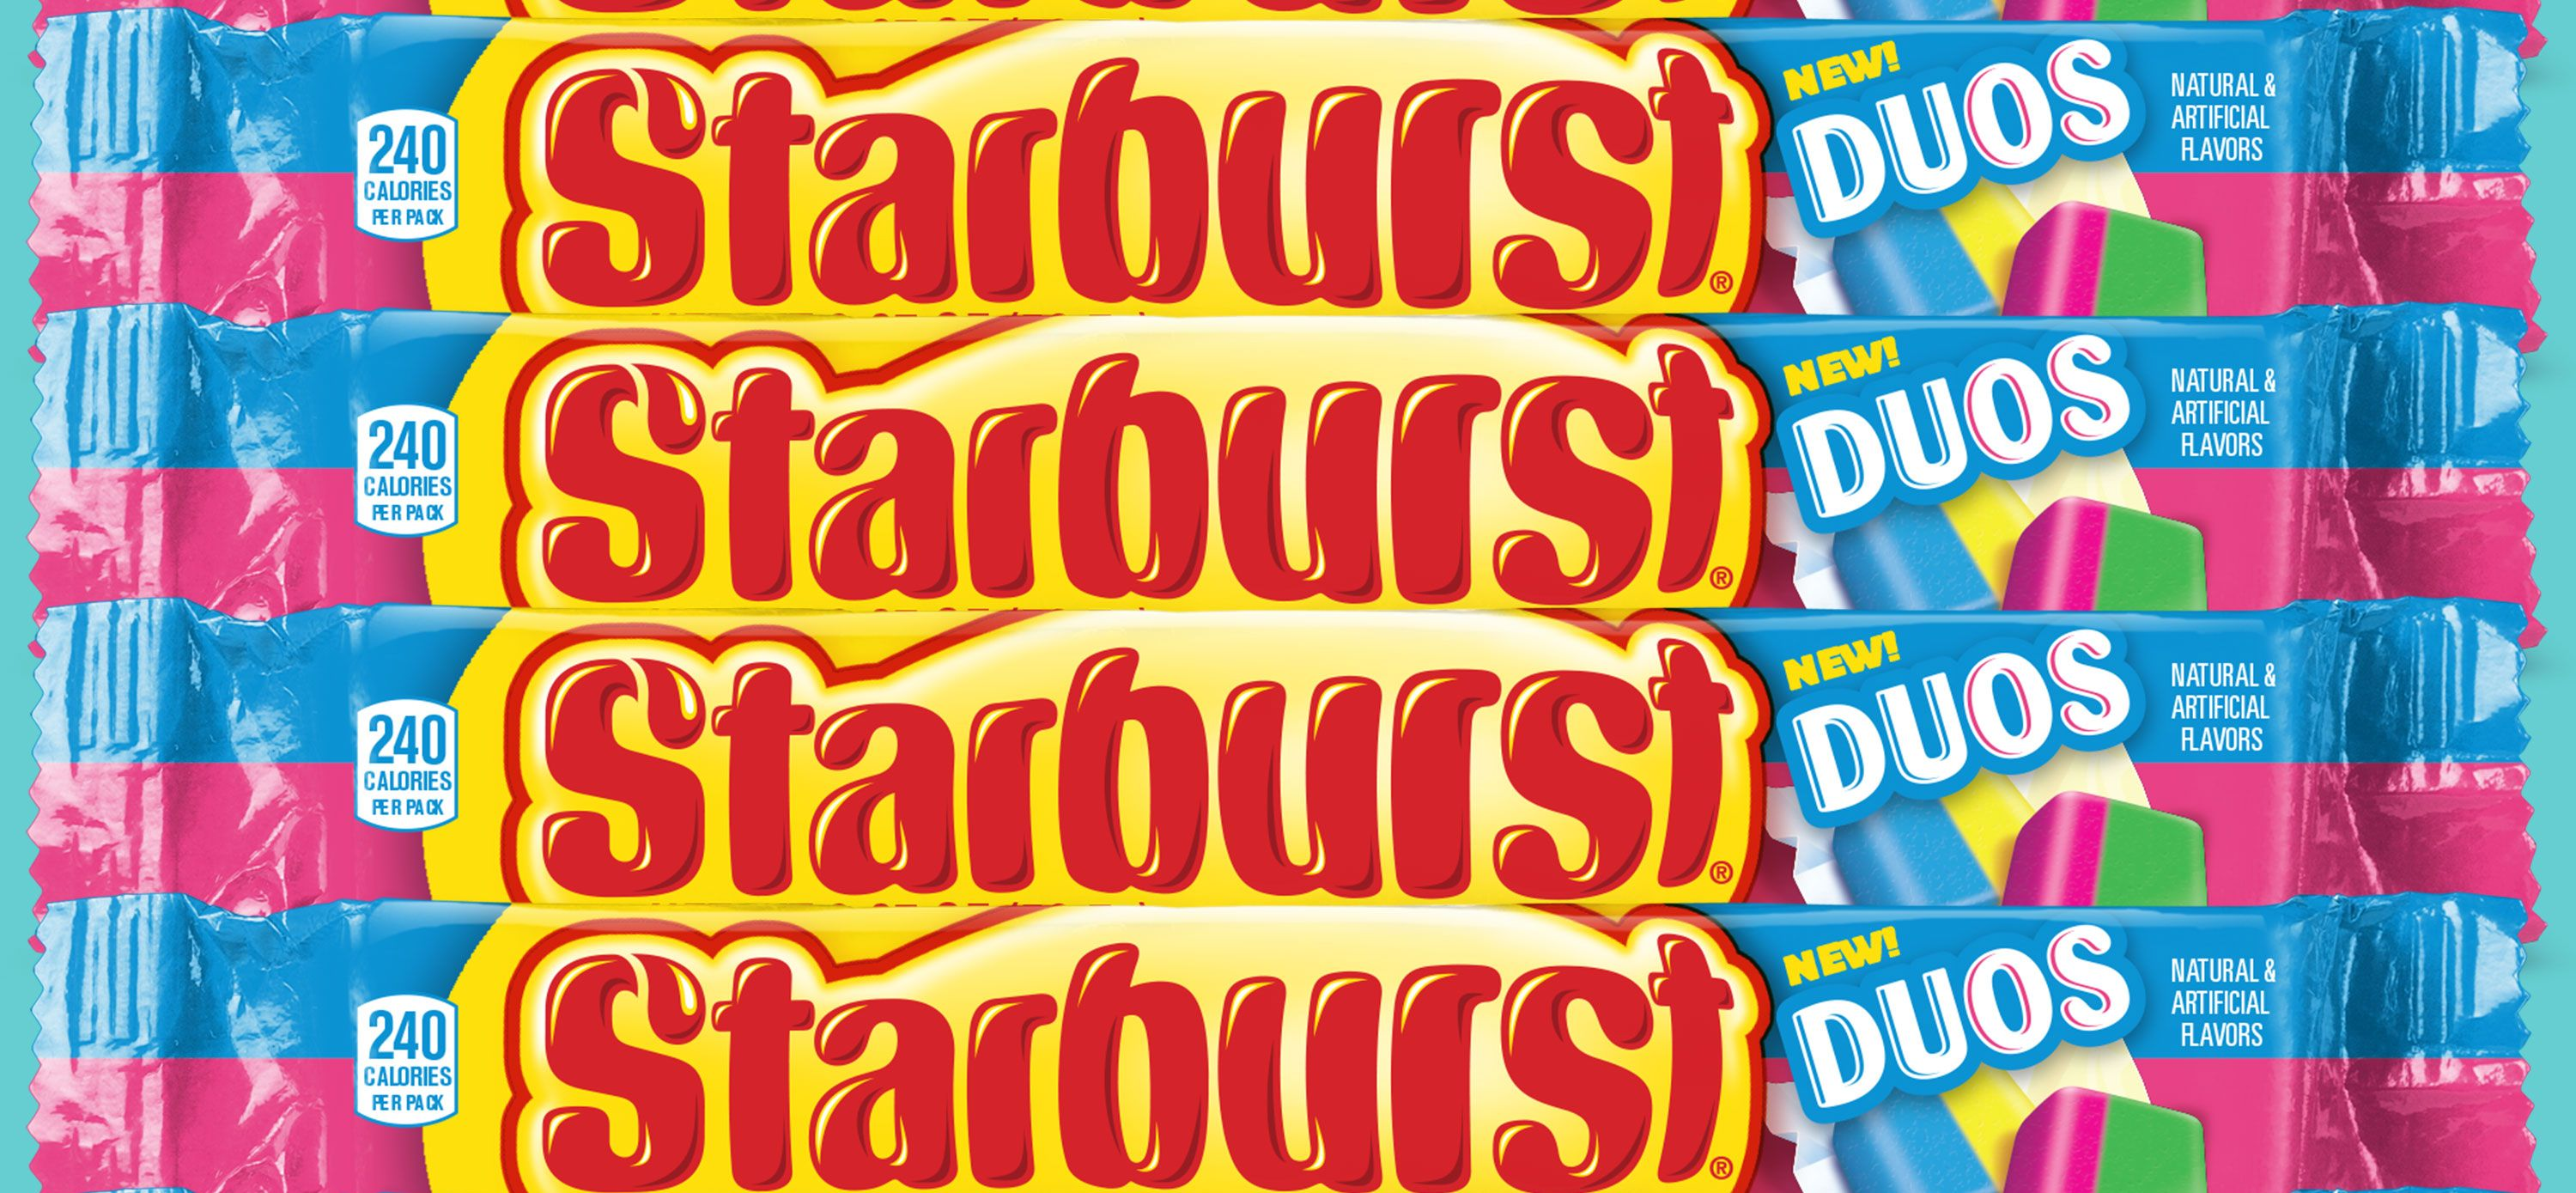 [UPDATE] Starburst's Two-In-One Duos Flavors Are Finally Here